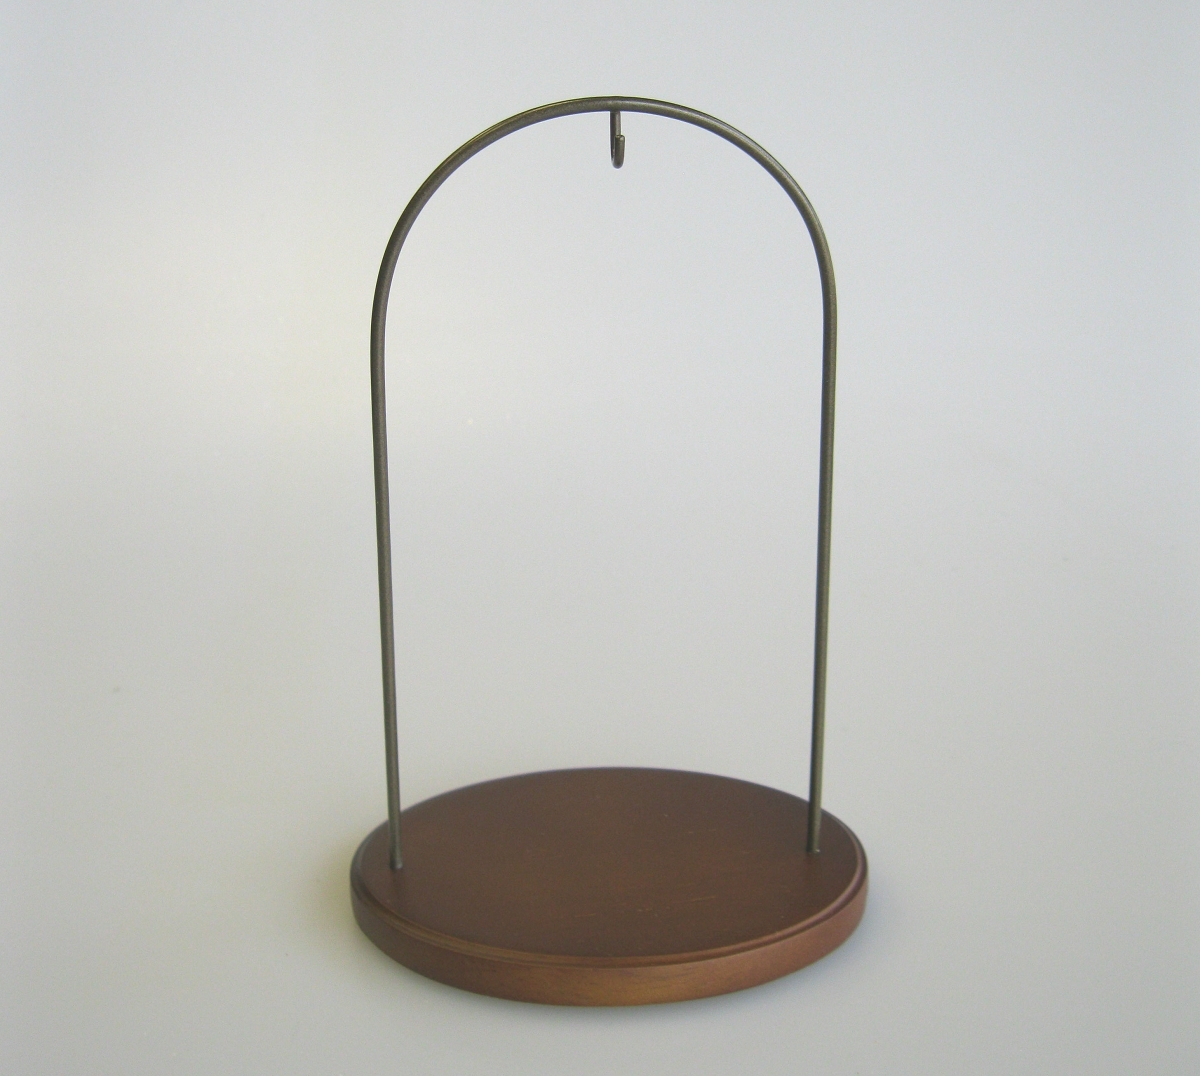 Walnut Hanging Ornament Stand Hooked On Ornaments